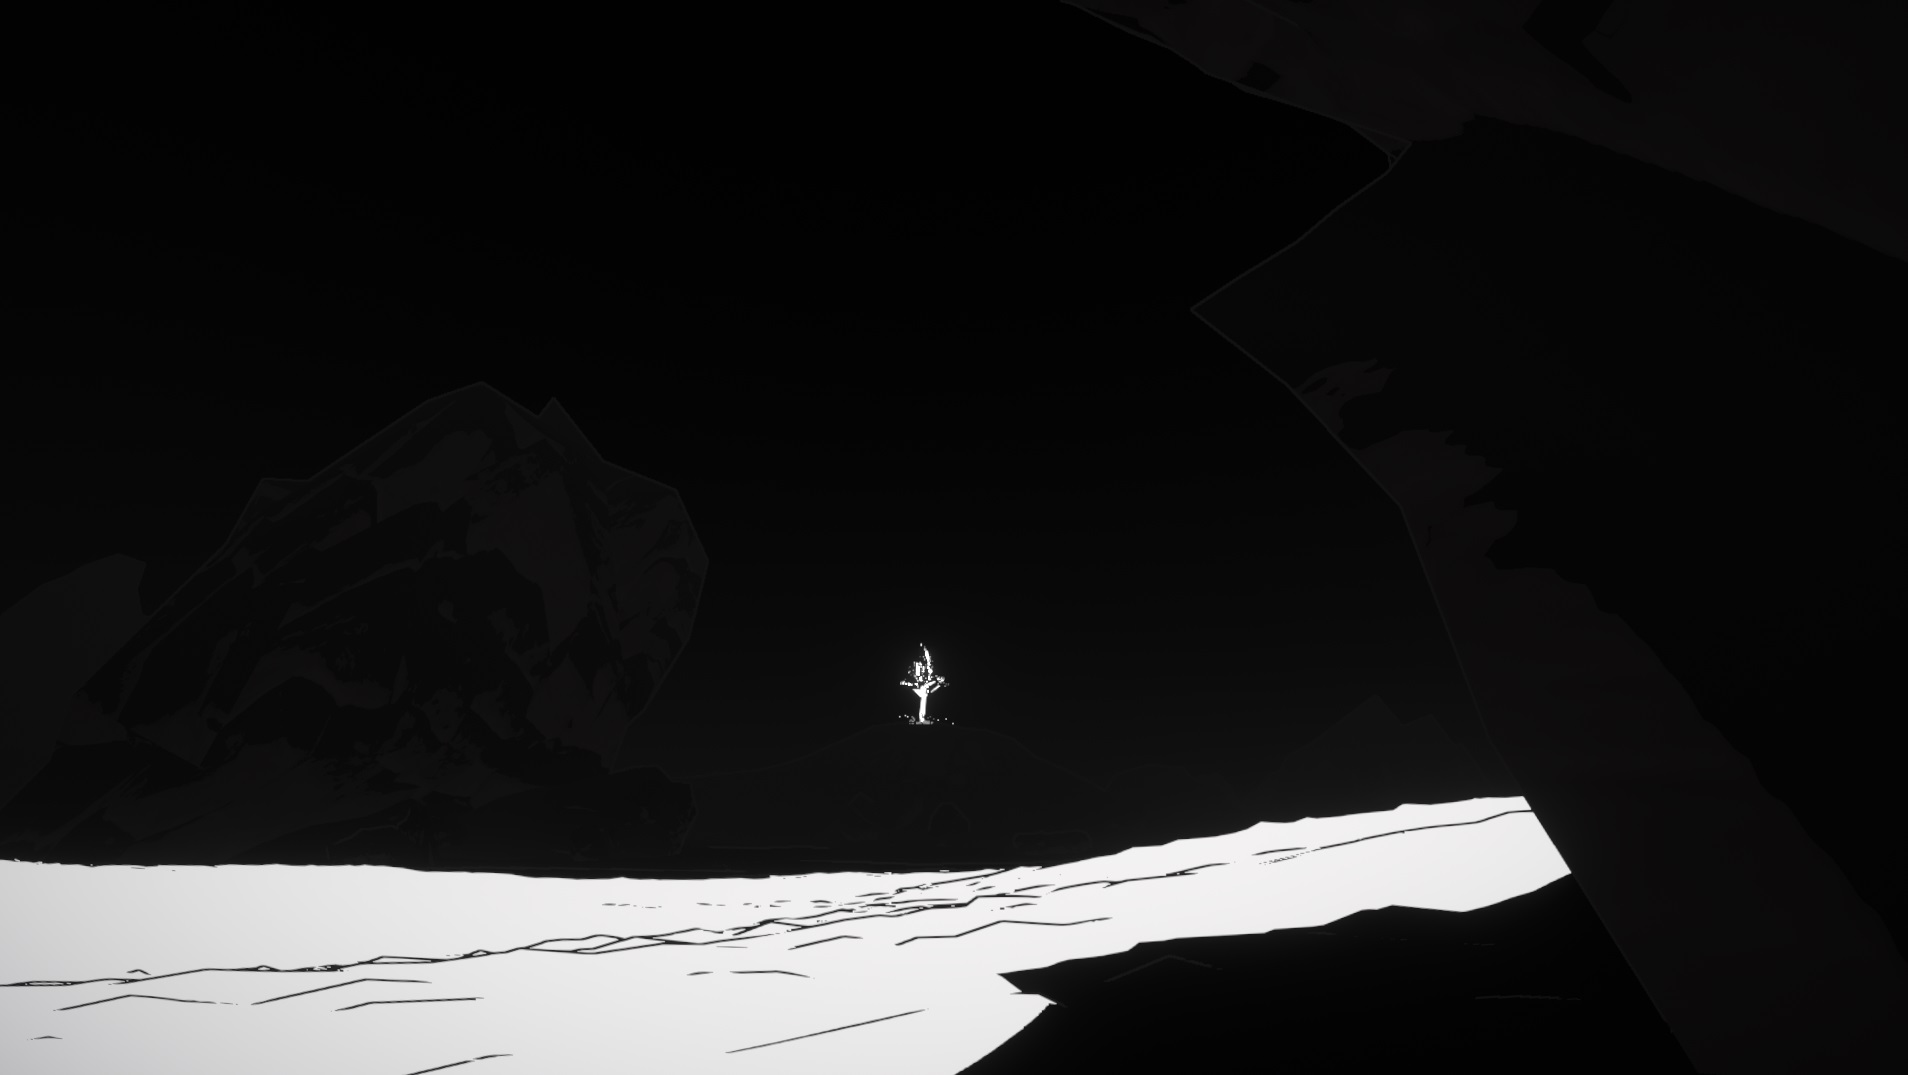 This, Too, Has Passed is the pensive remix to a virtually unobtainable game